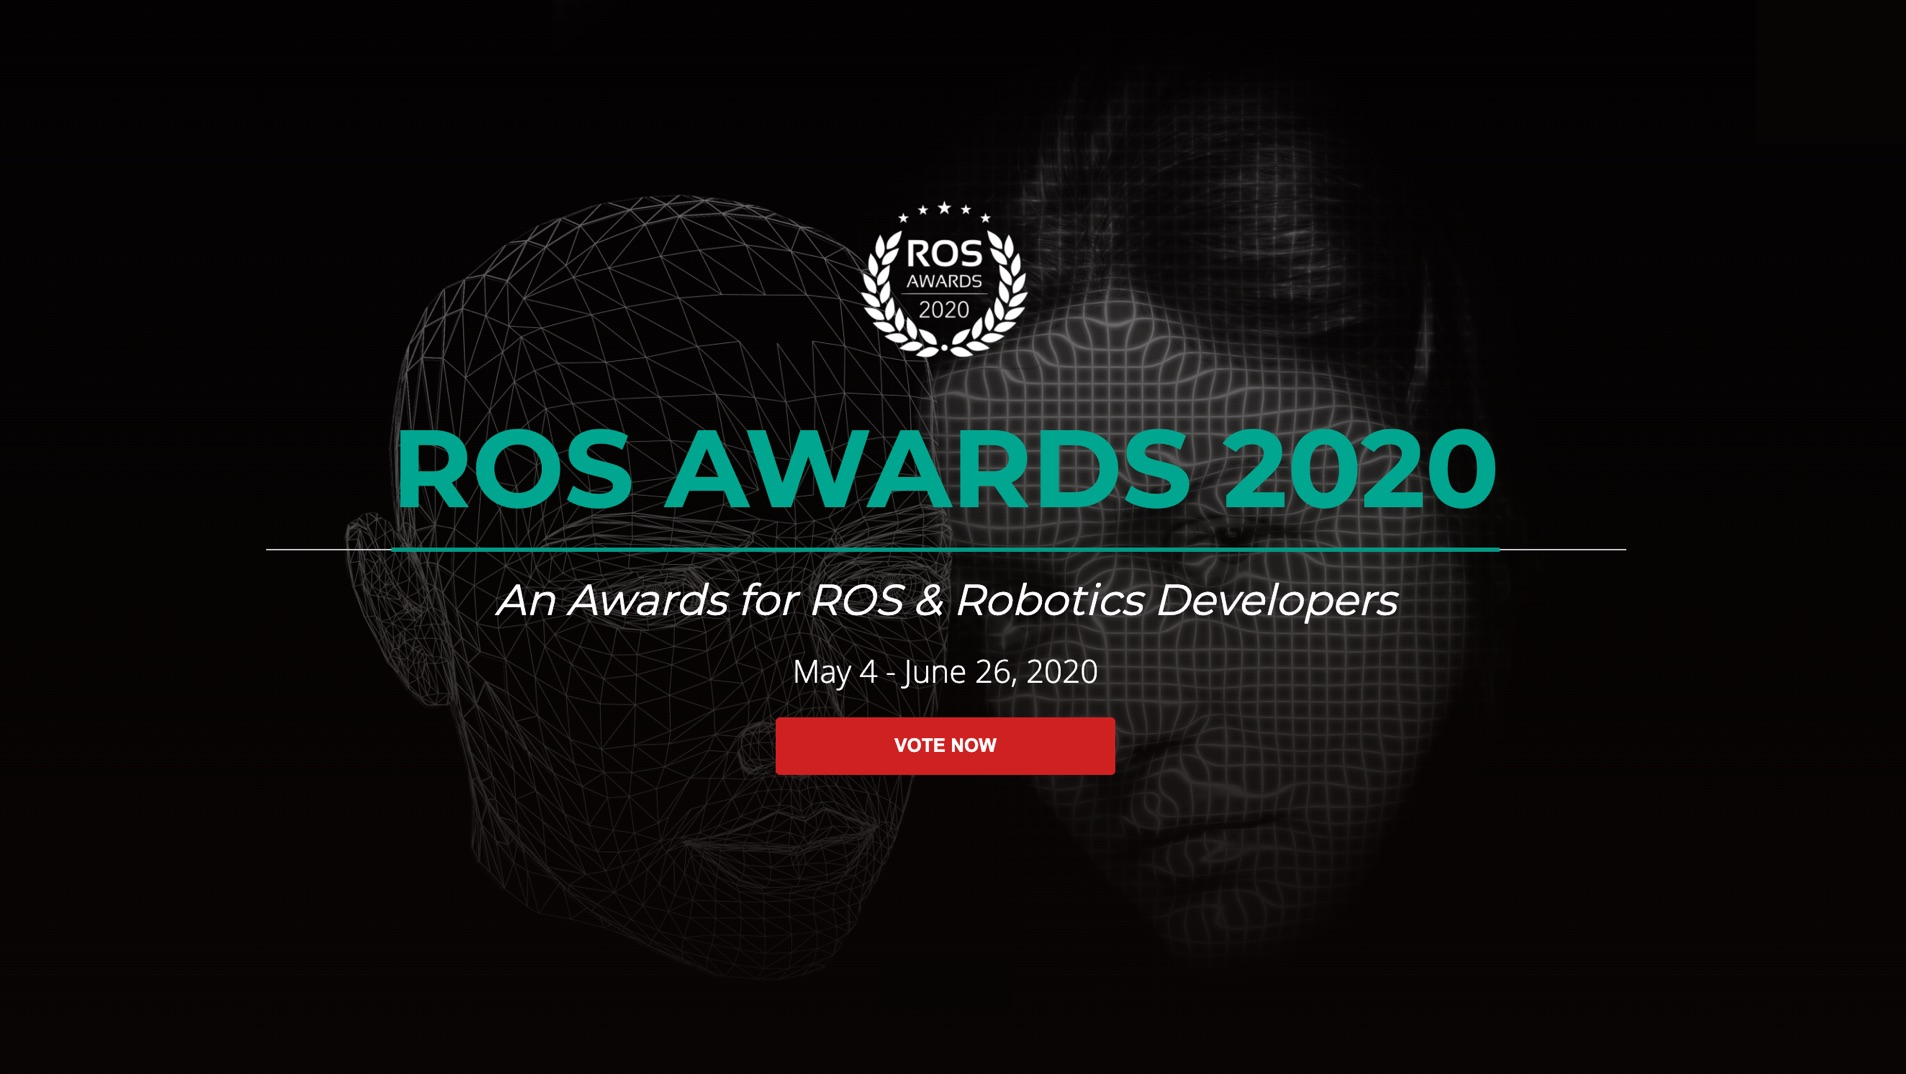 ROS Awards 2020 Results